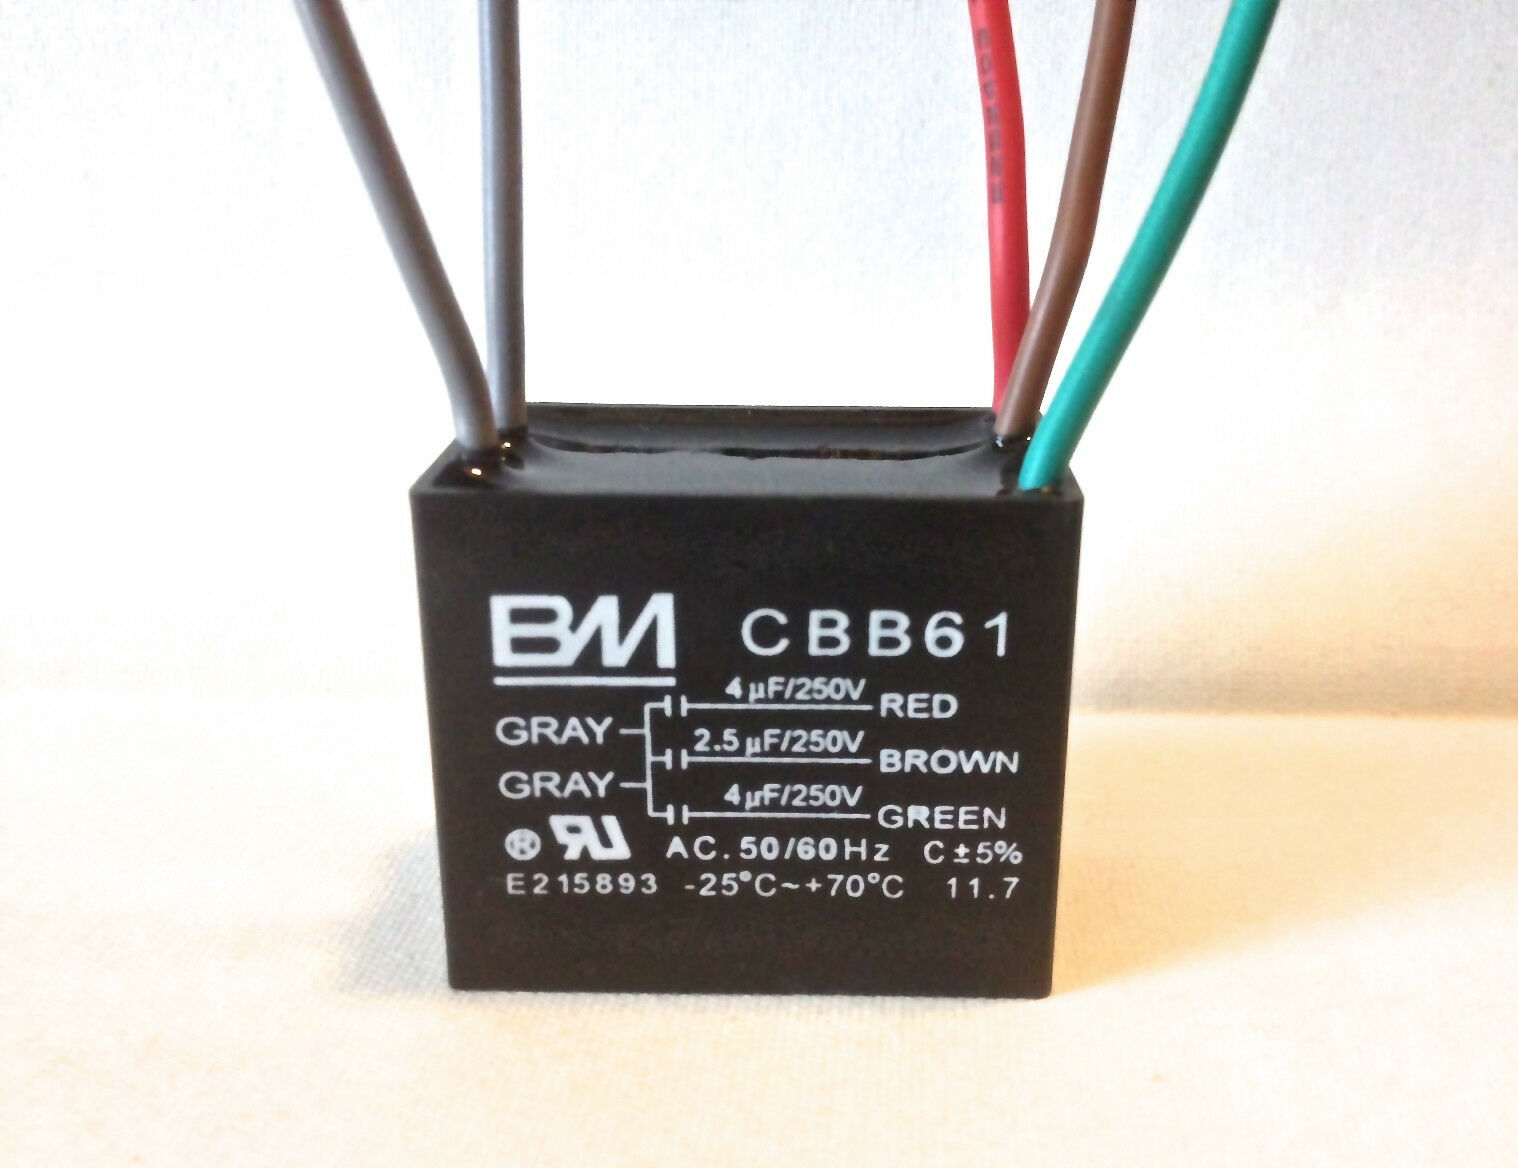 Cbb61 Fan Capacitor Wiring Diagram